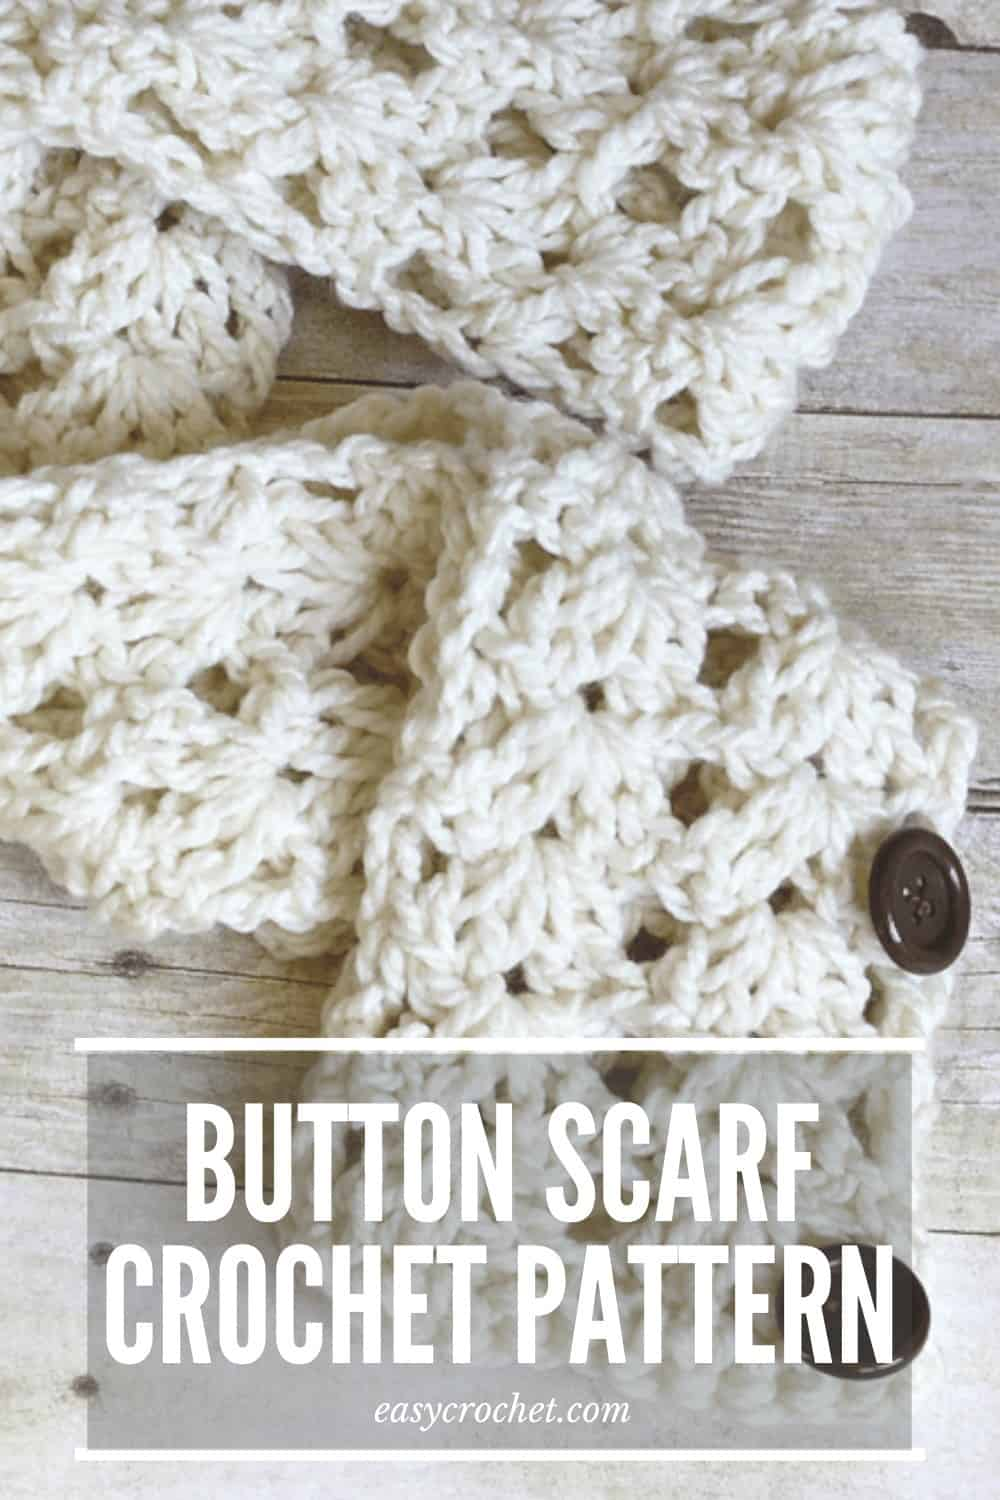 button scarf crochet pattern